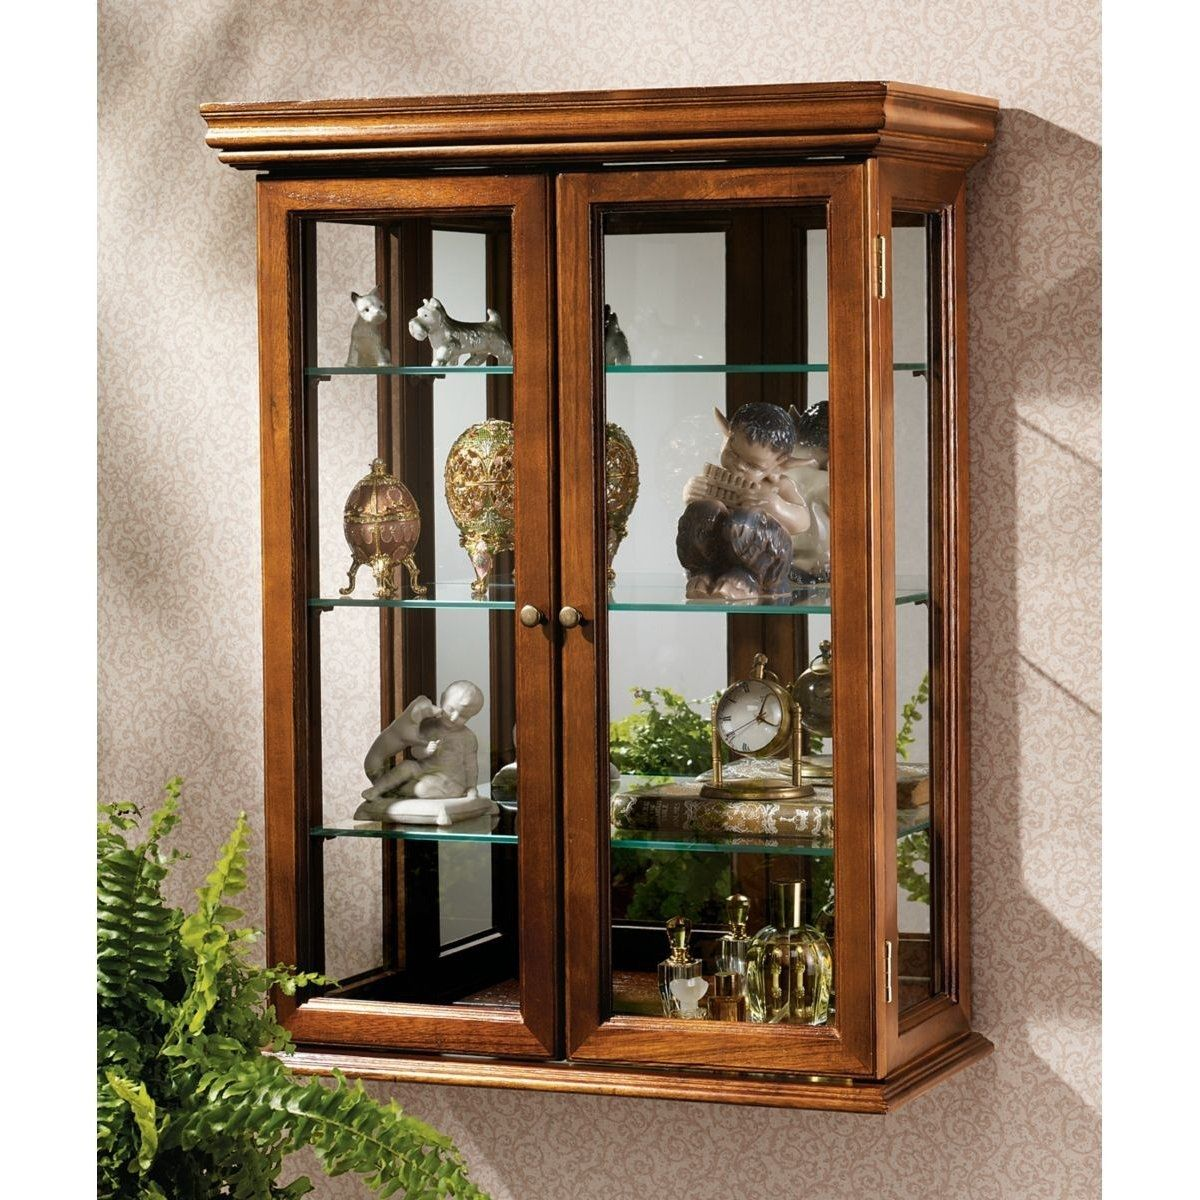 Wooden Wall Cabinets With Glass Doors Httpbetdaffaires